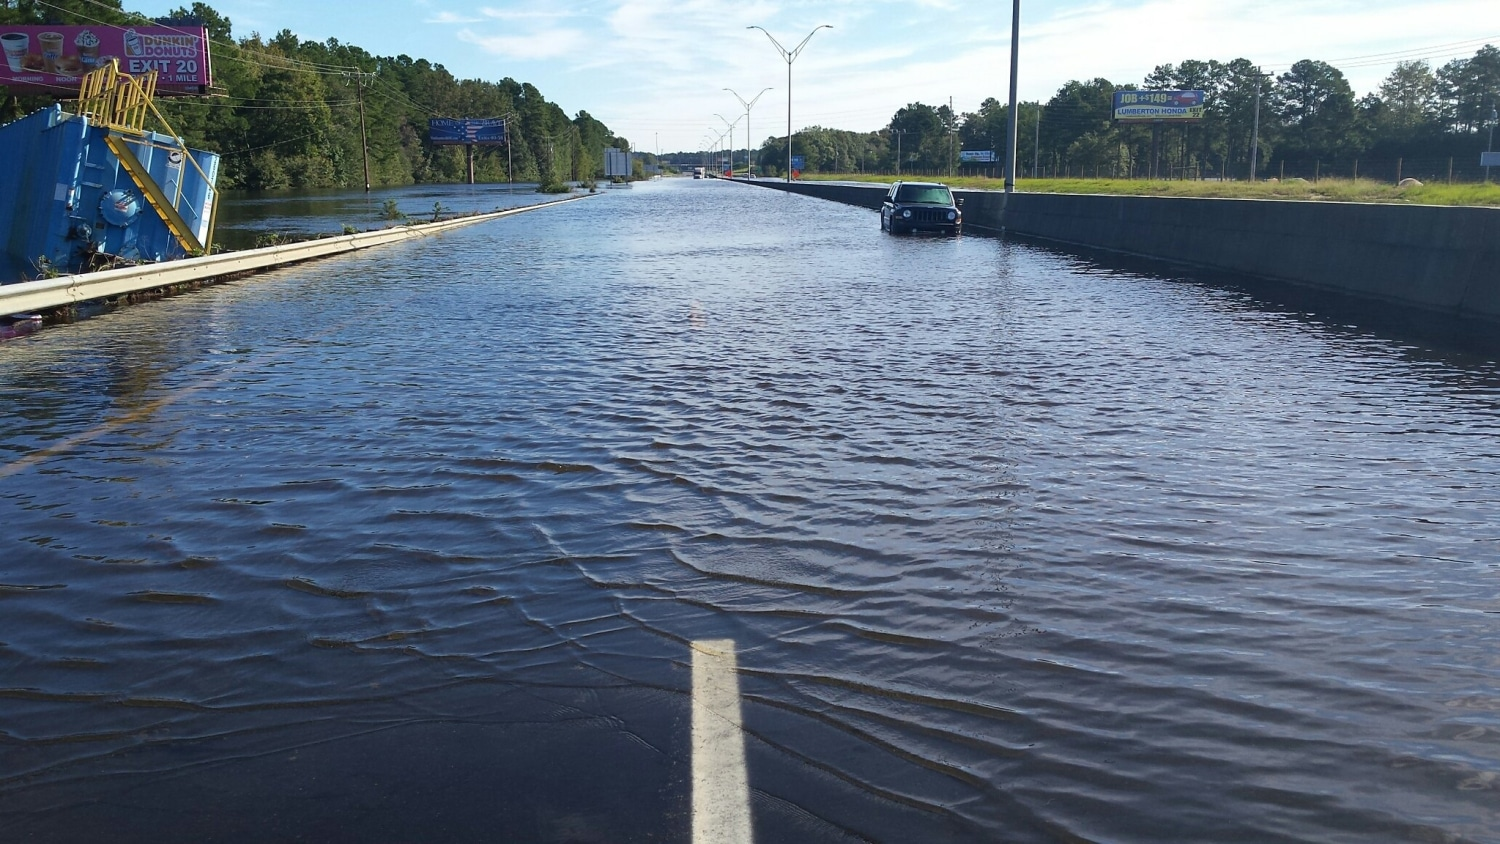 a two-lane road disappears into floodwaters